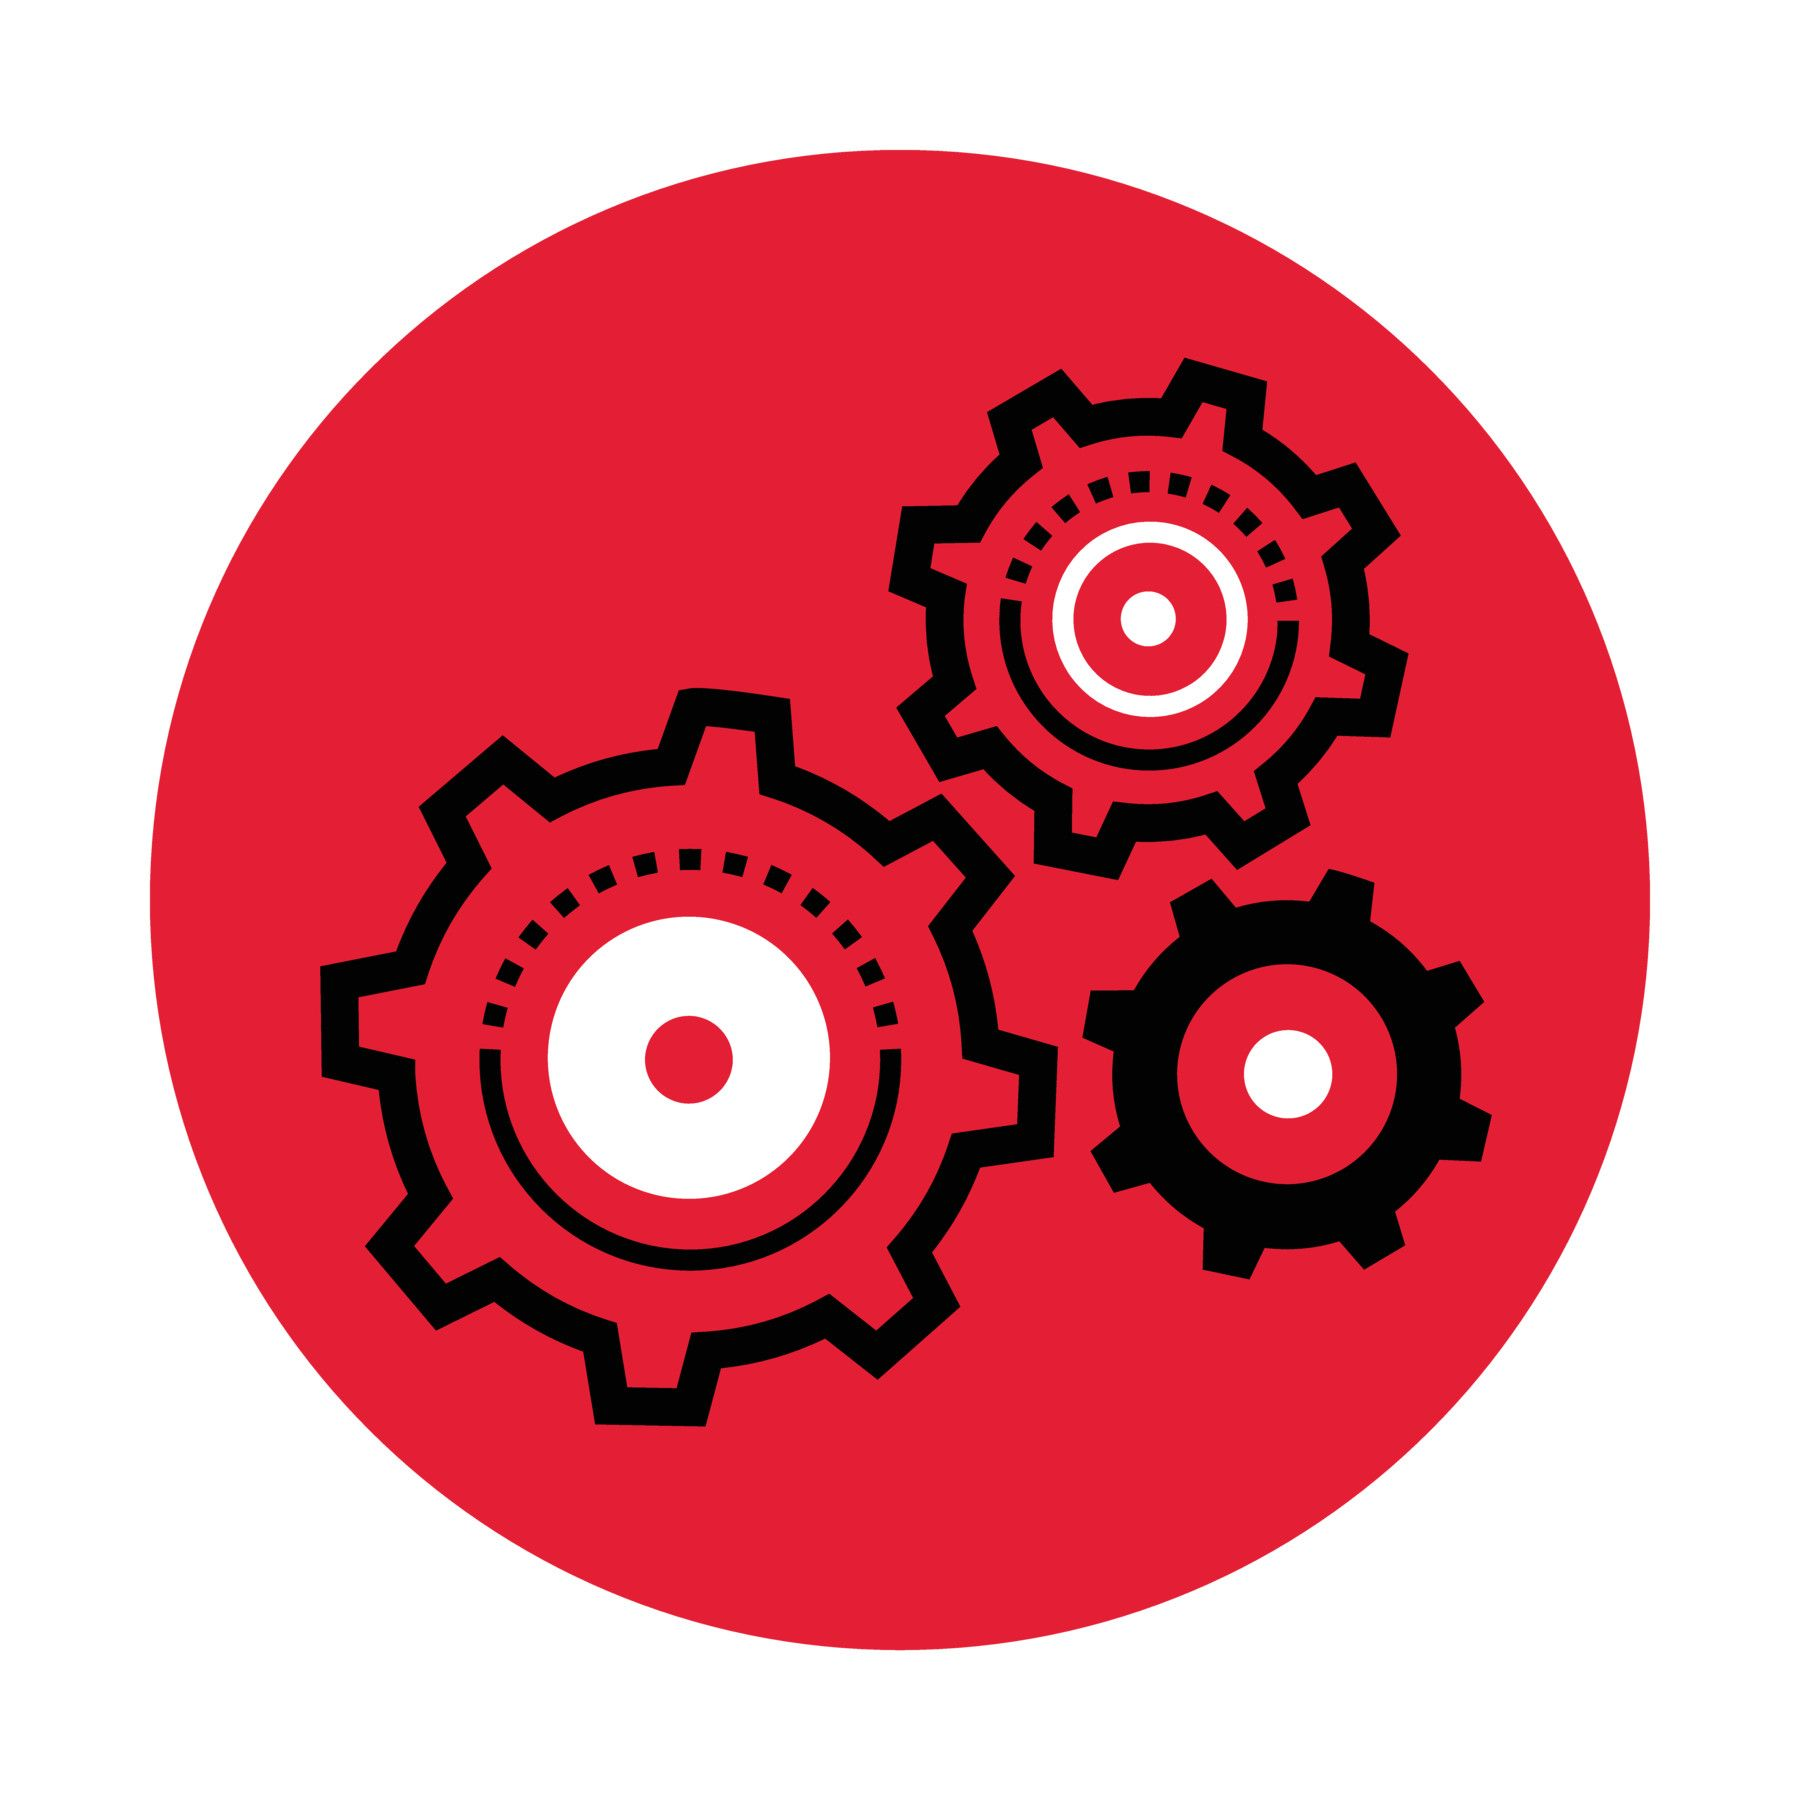 Icon illustration of a gears.